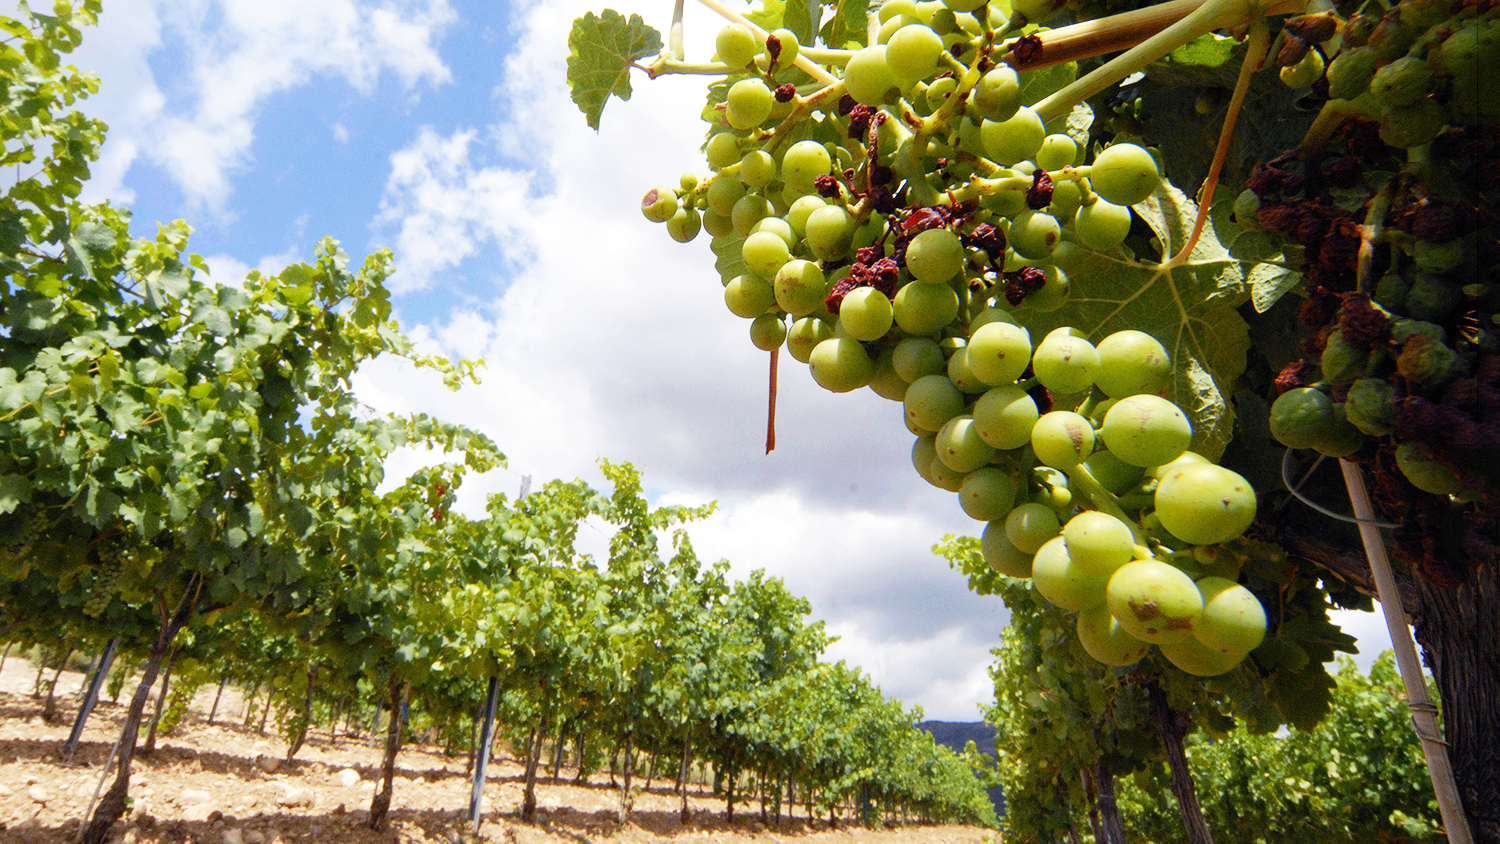 torress vineyard in spain overcomes pests and climate change